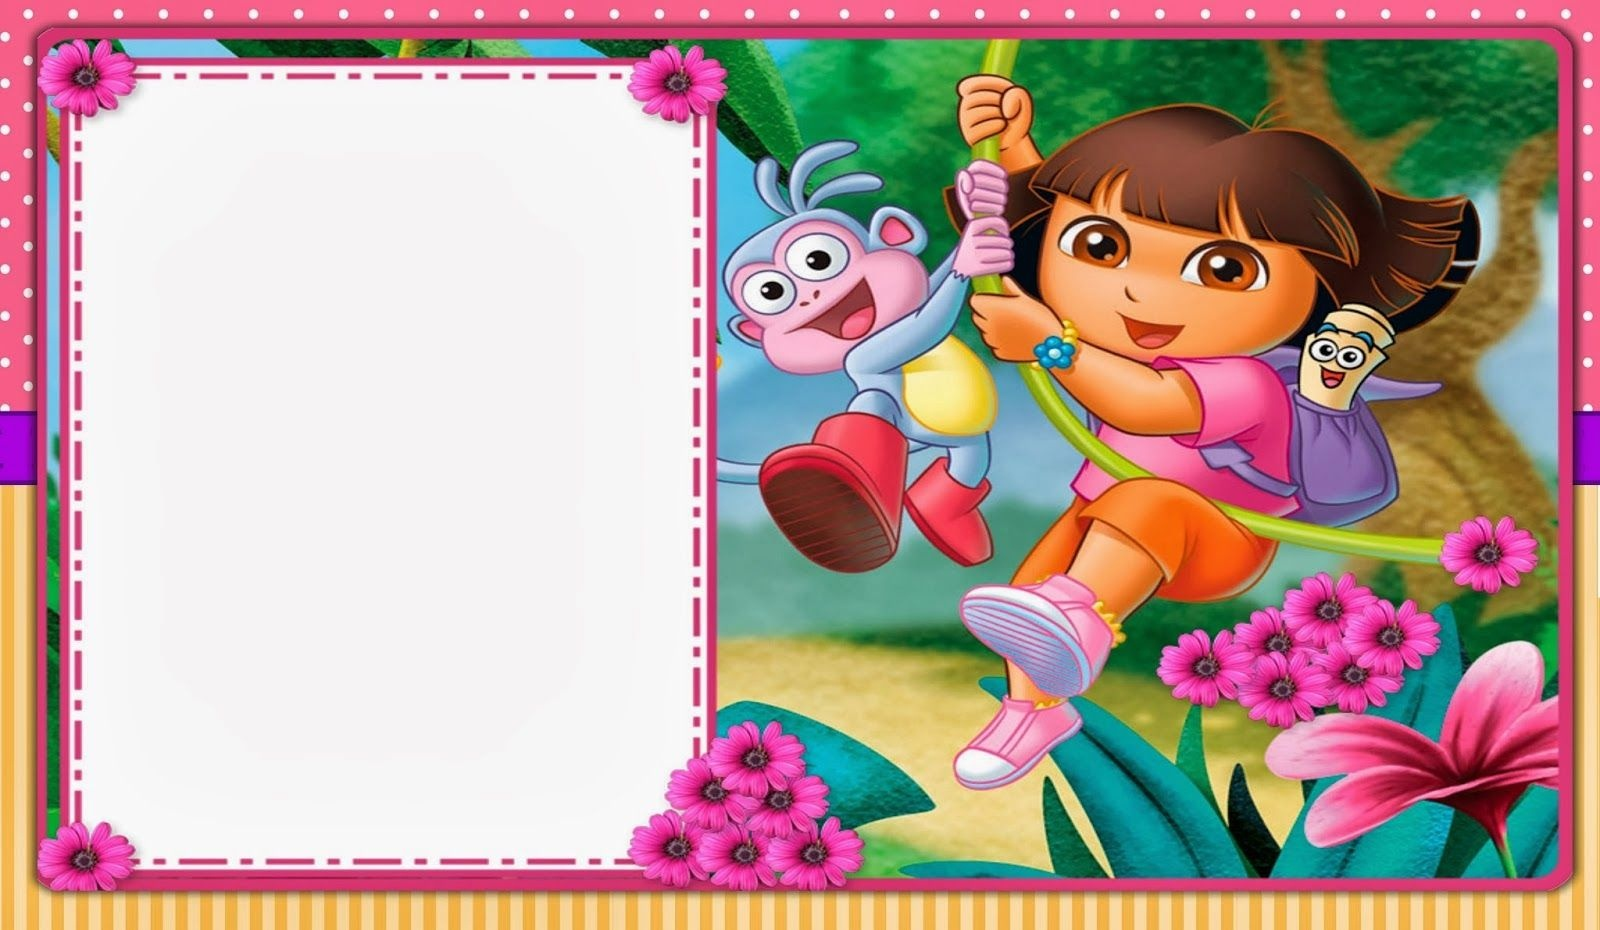 Dora The Explorer: Free Printable Invitations And Party Printables - Dora Birthday Cards Free Printable